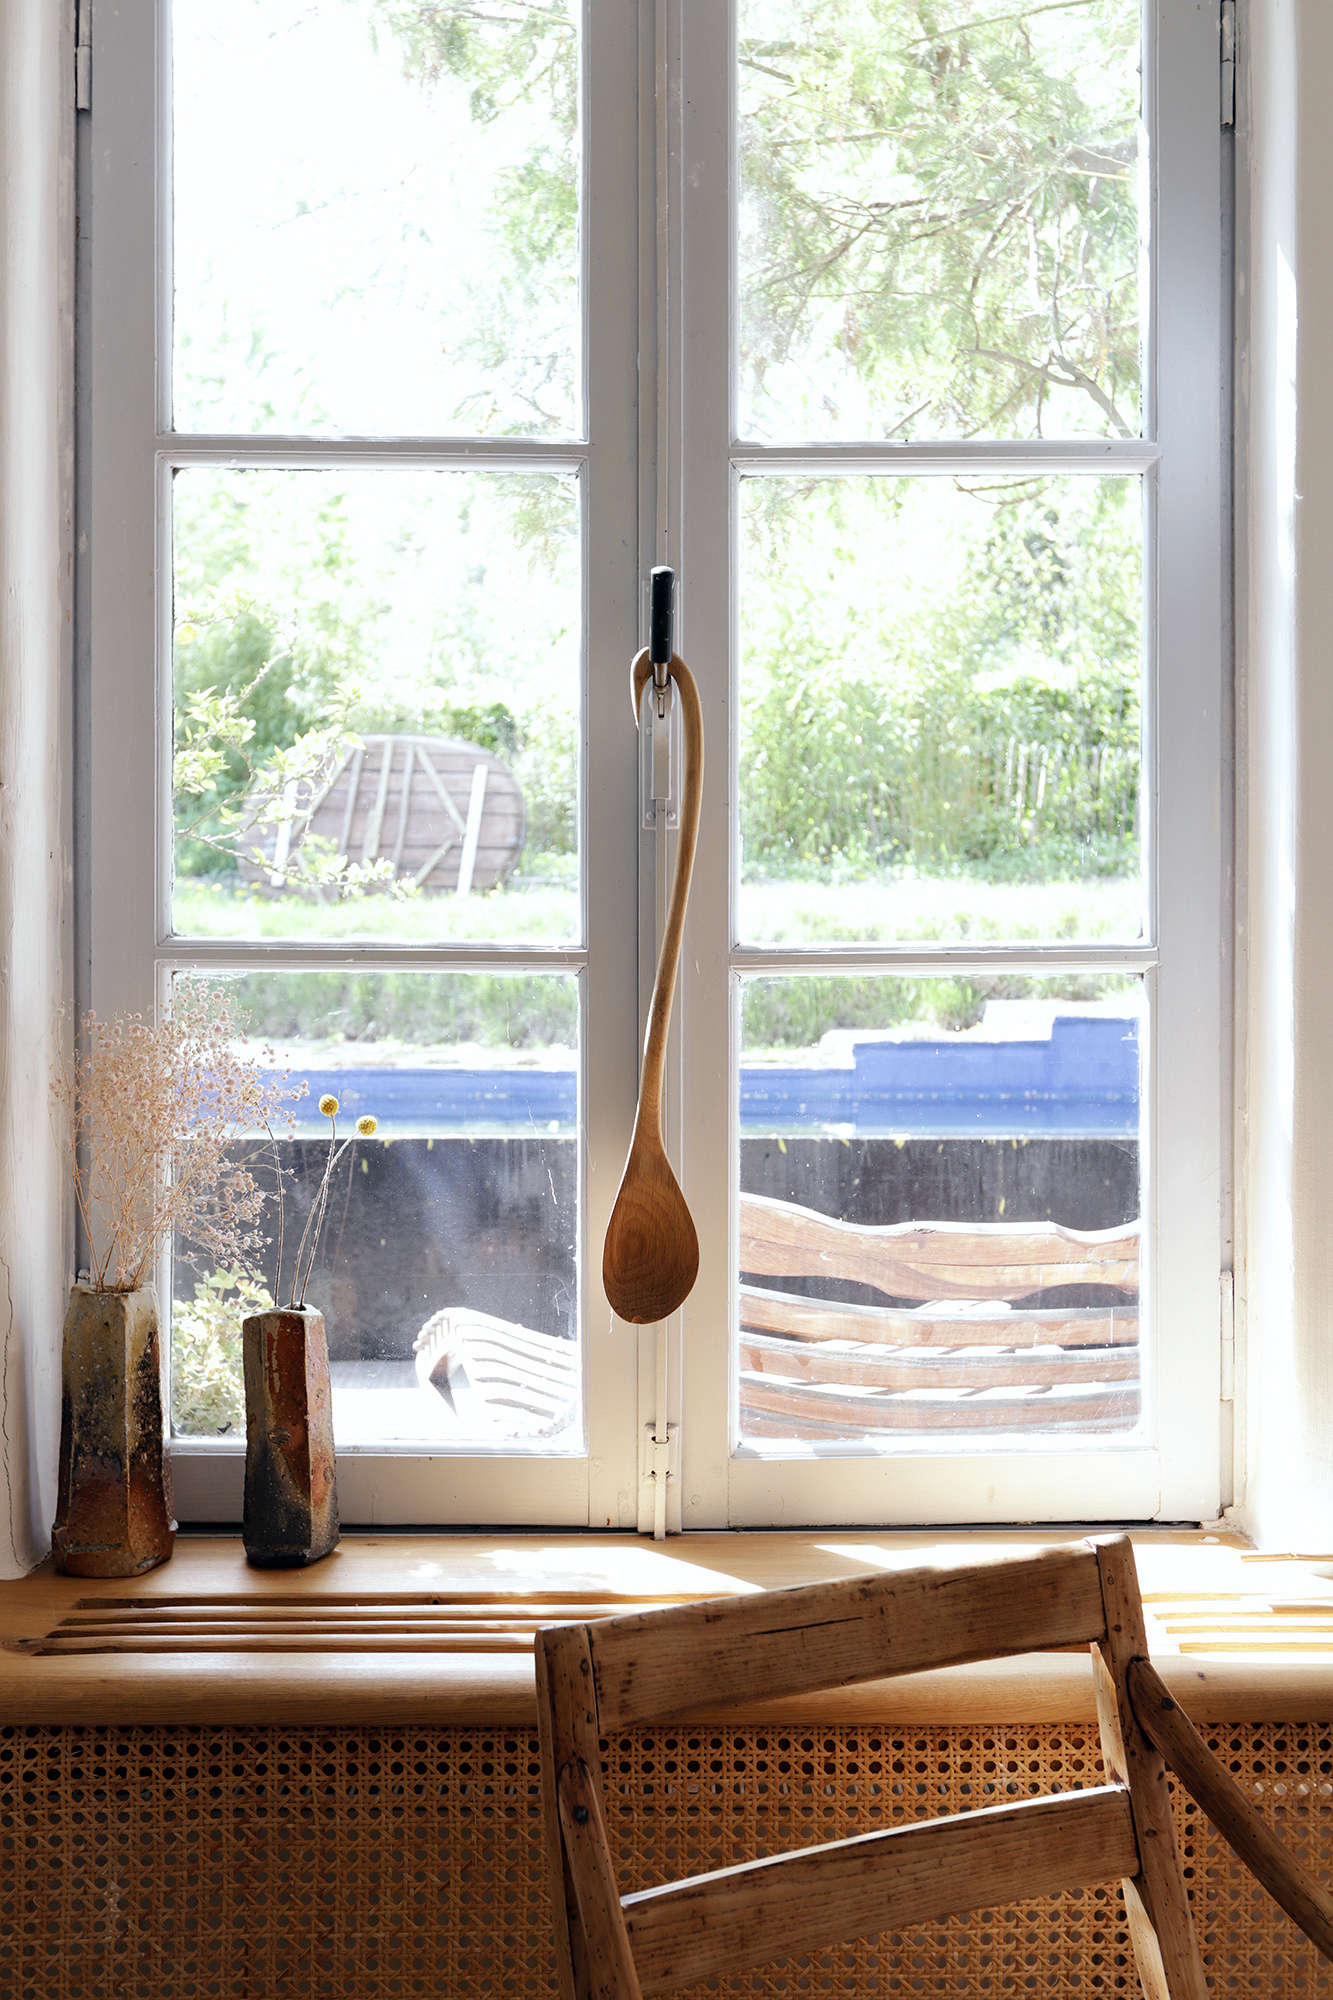 The carved wooden spoon and ceramic vases are both handmade.